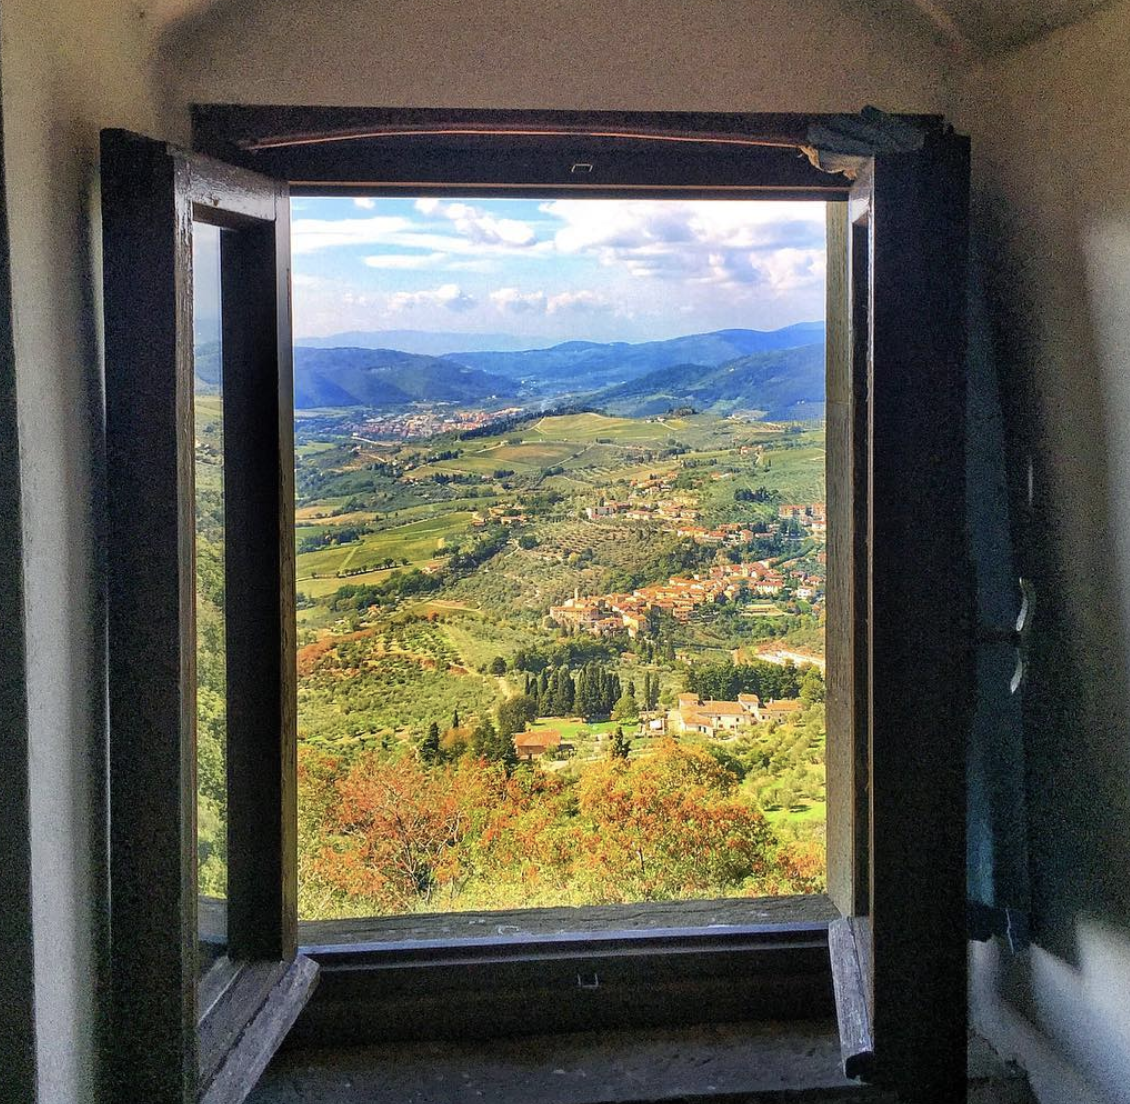 View from Castello 19 (Studio apartment sleeps up to 3 guests)